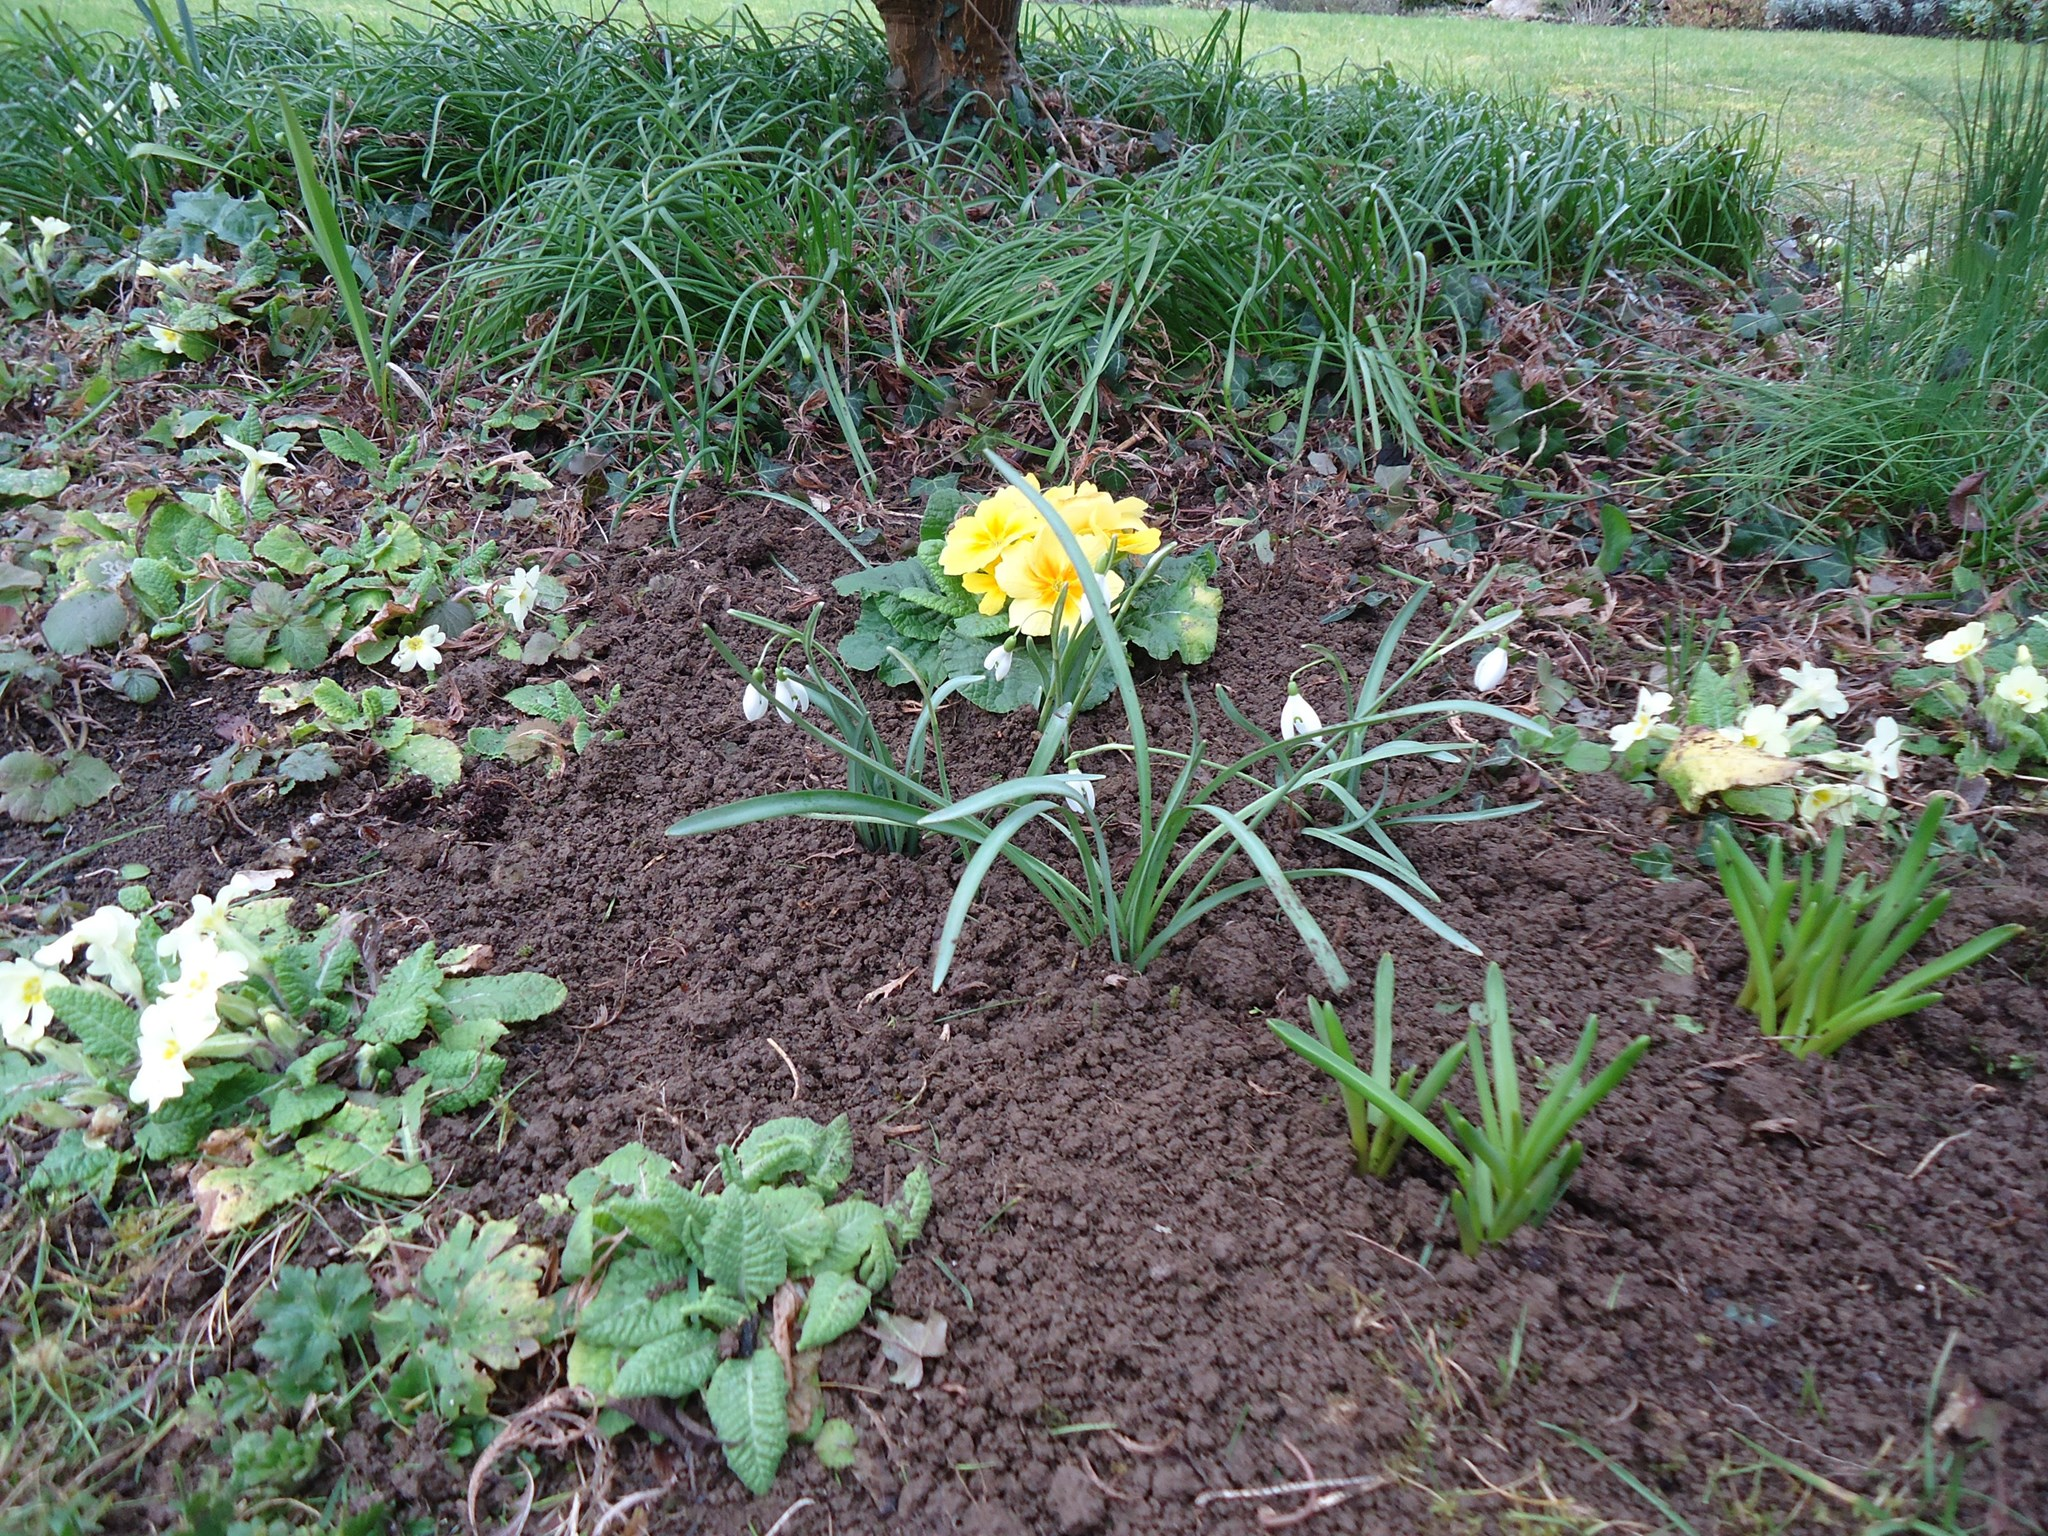 Eva's snowdrops are now planted in our garden, we will cherish them every year. Love, Lucy xx